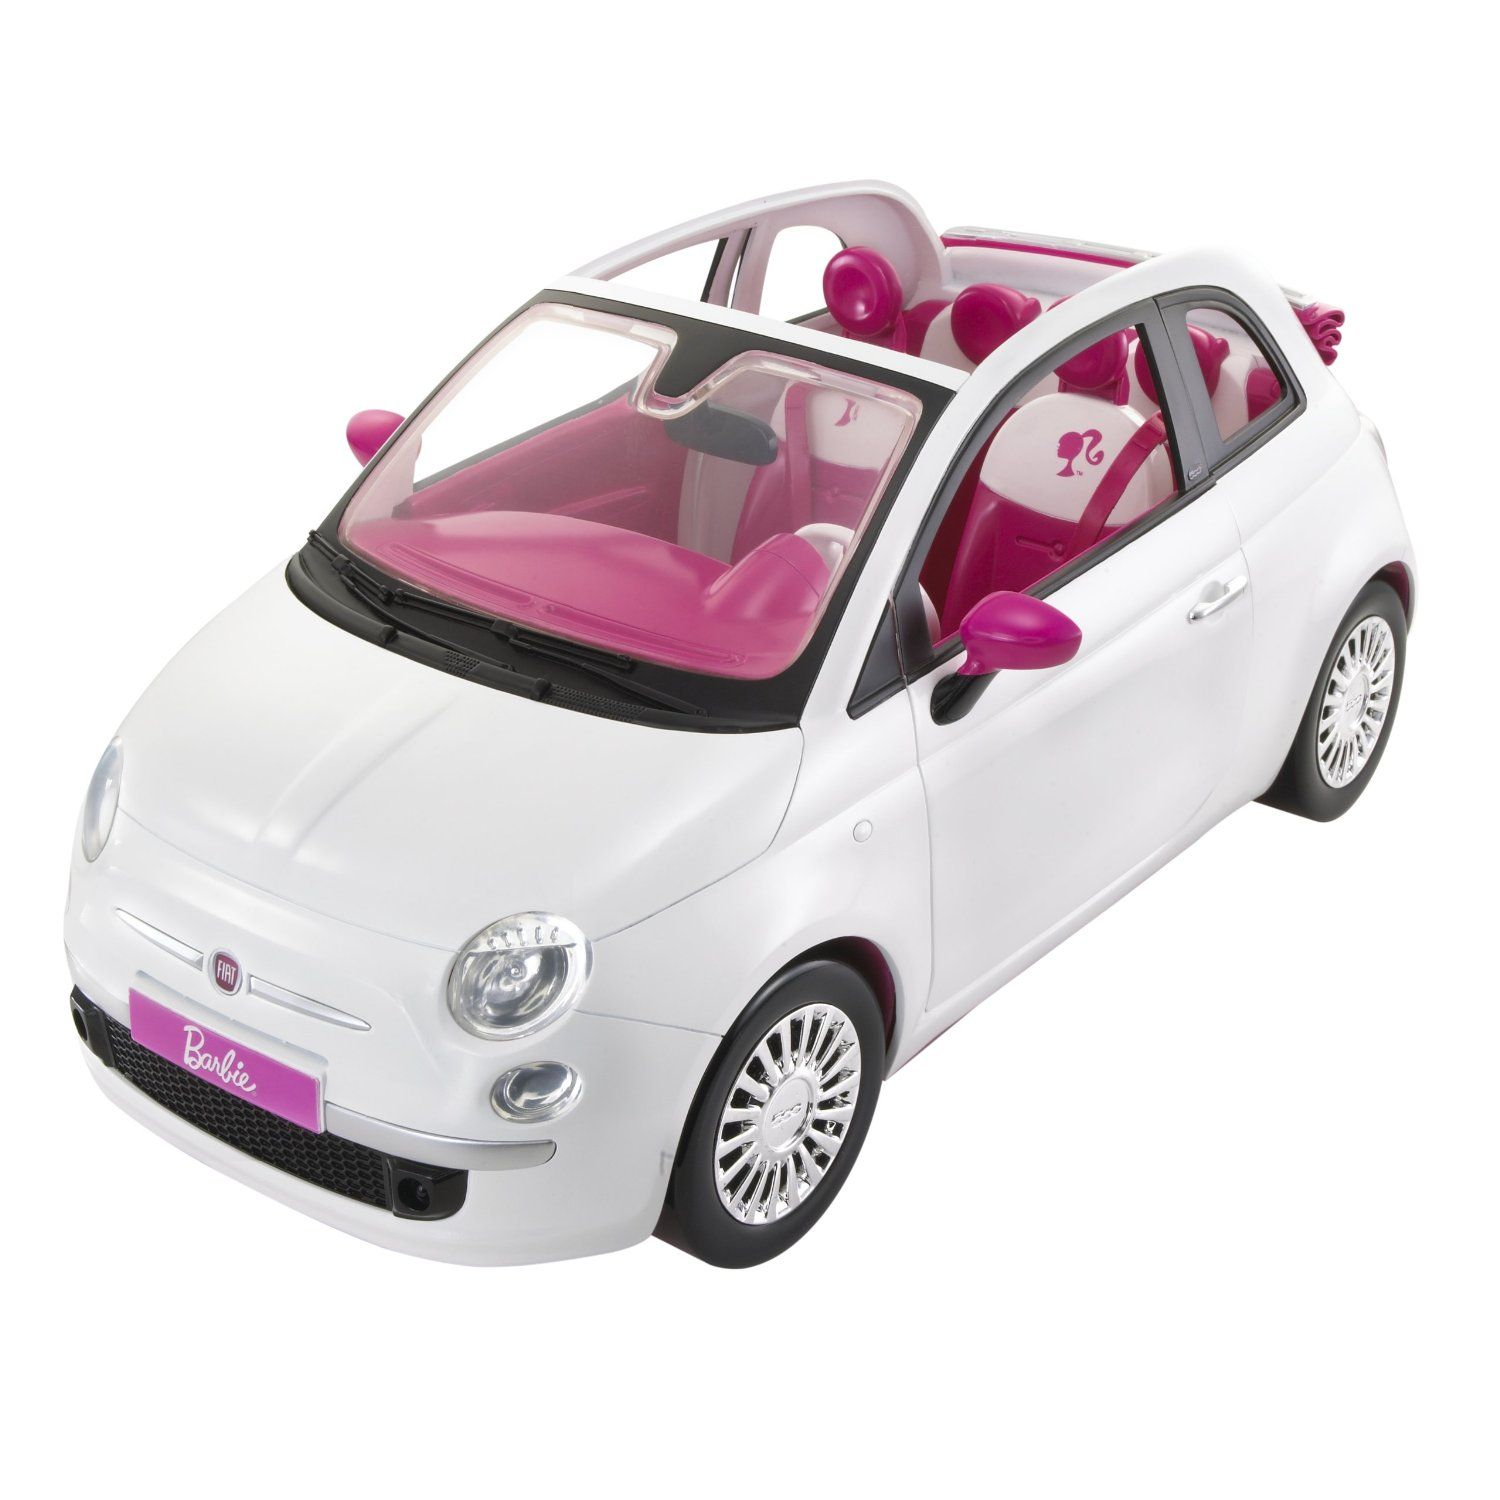 done july 24th 2012 bought a mattel fiat 500 for my. Black Bedroom Furniture Sets. Home Design Ideas